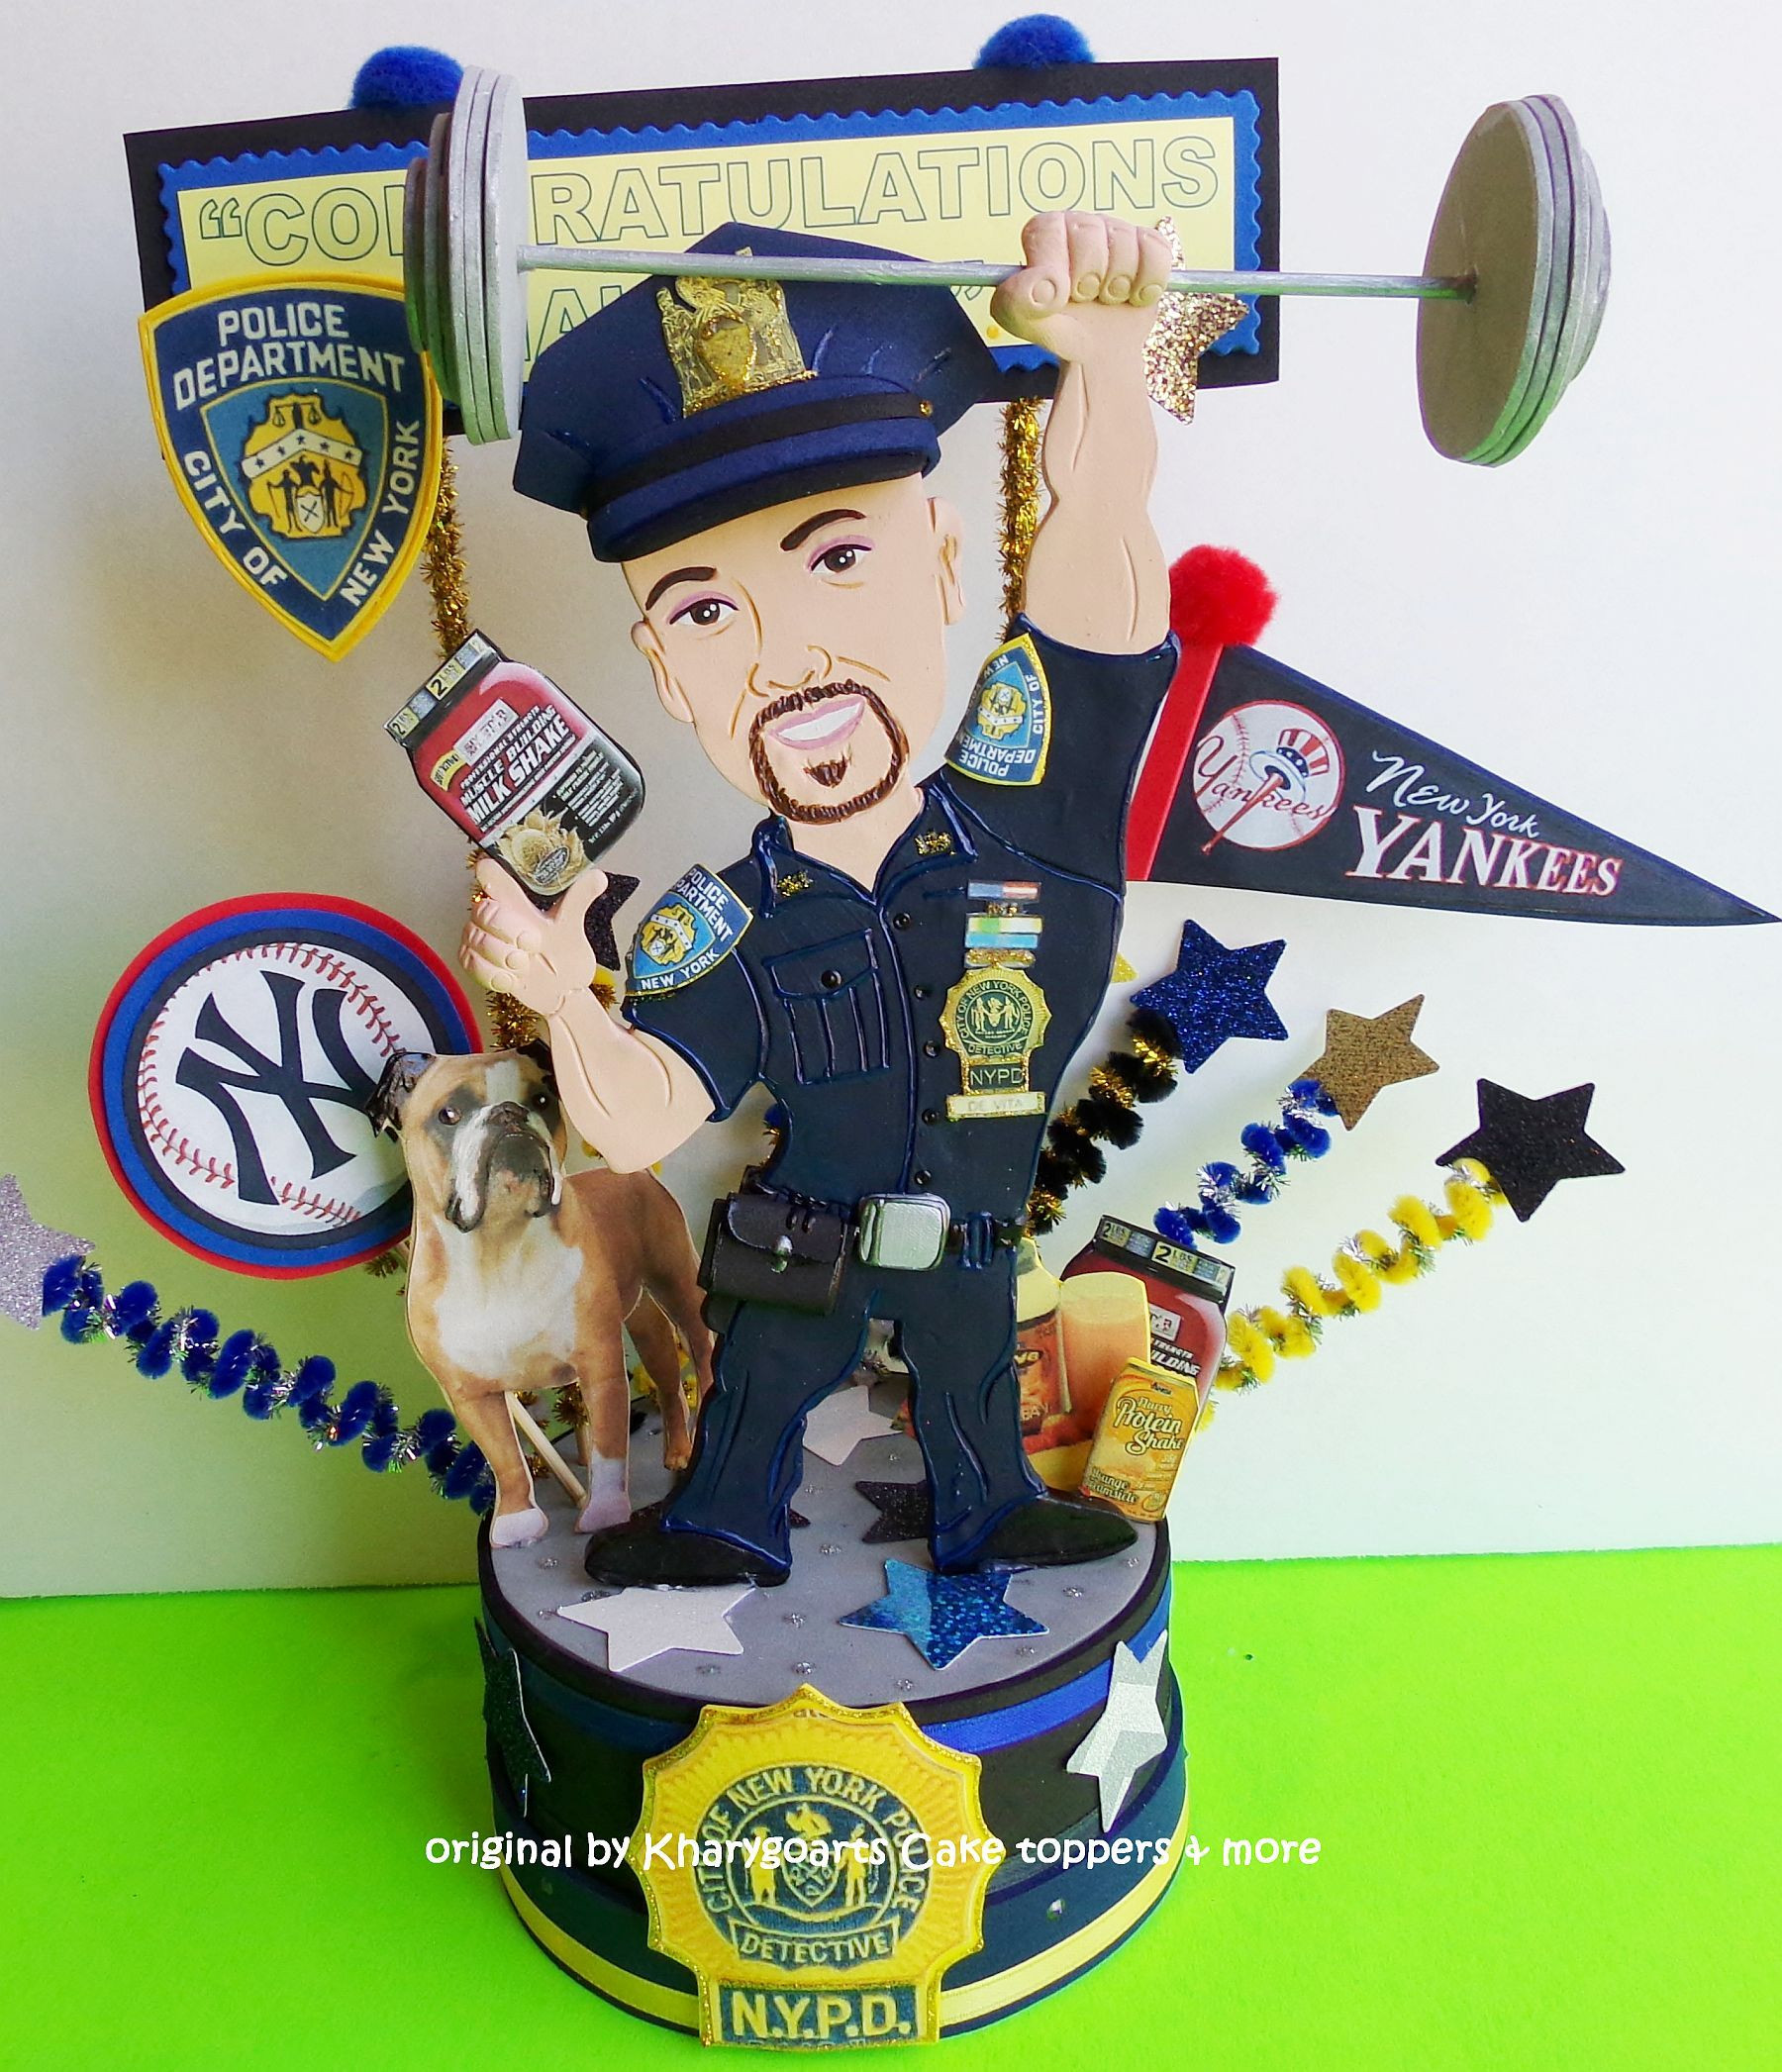 Police Officer Retirement Party Ideas  Police Retirement cake topper Police officer Sheriff party